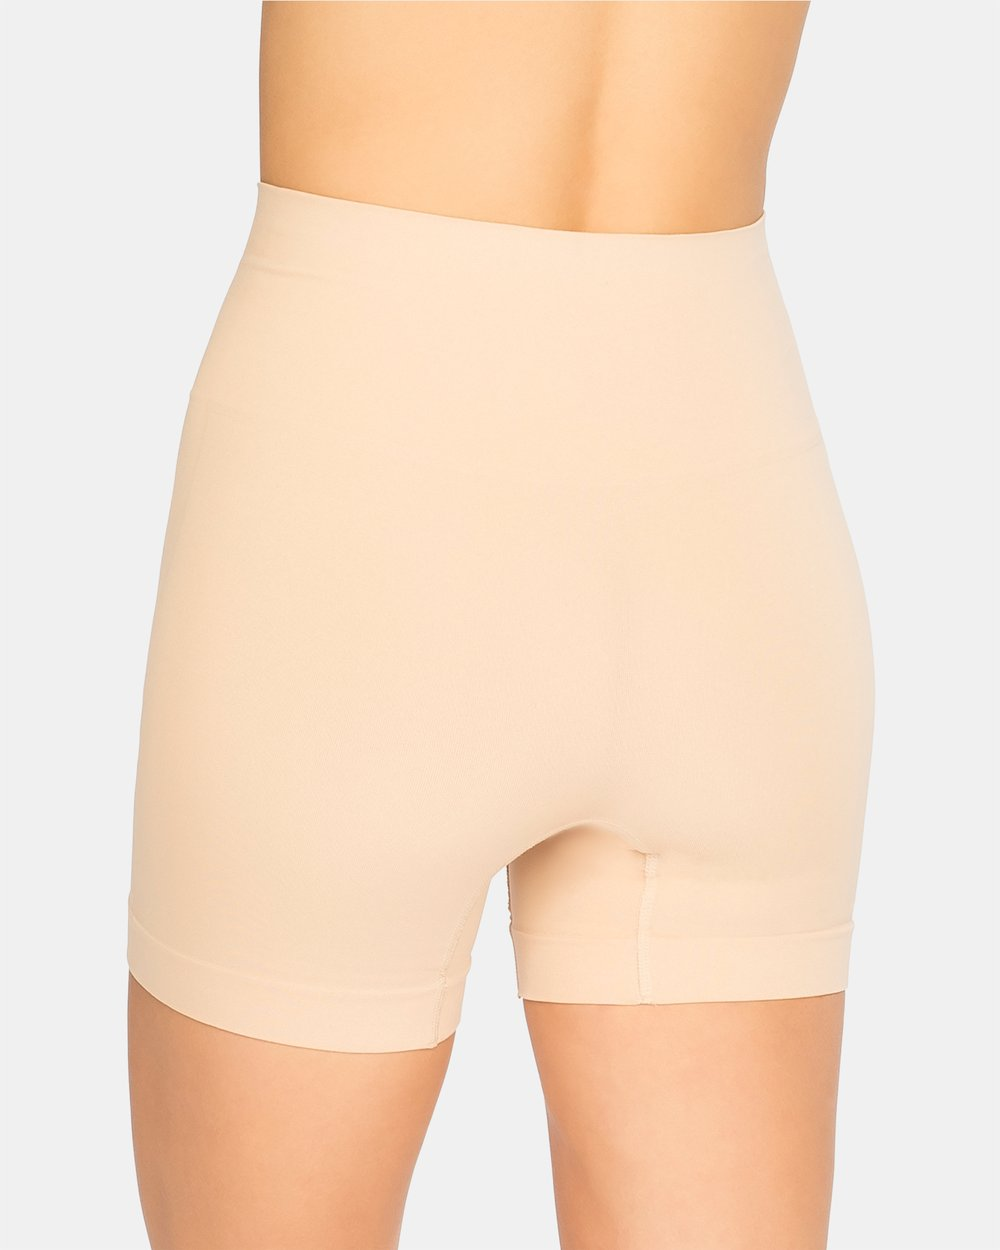 e25562b24b Everyday Shaping Panties Mid-Thigh Shorts by Spanx Online